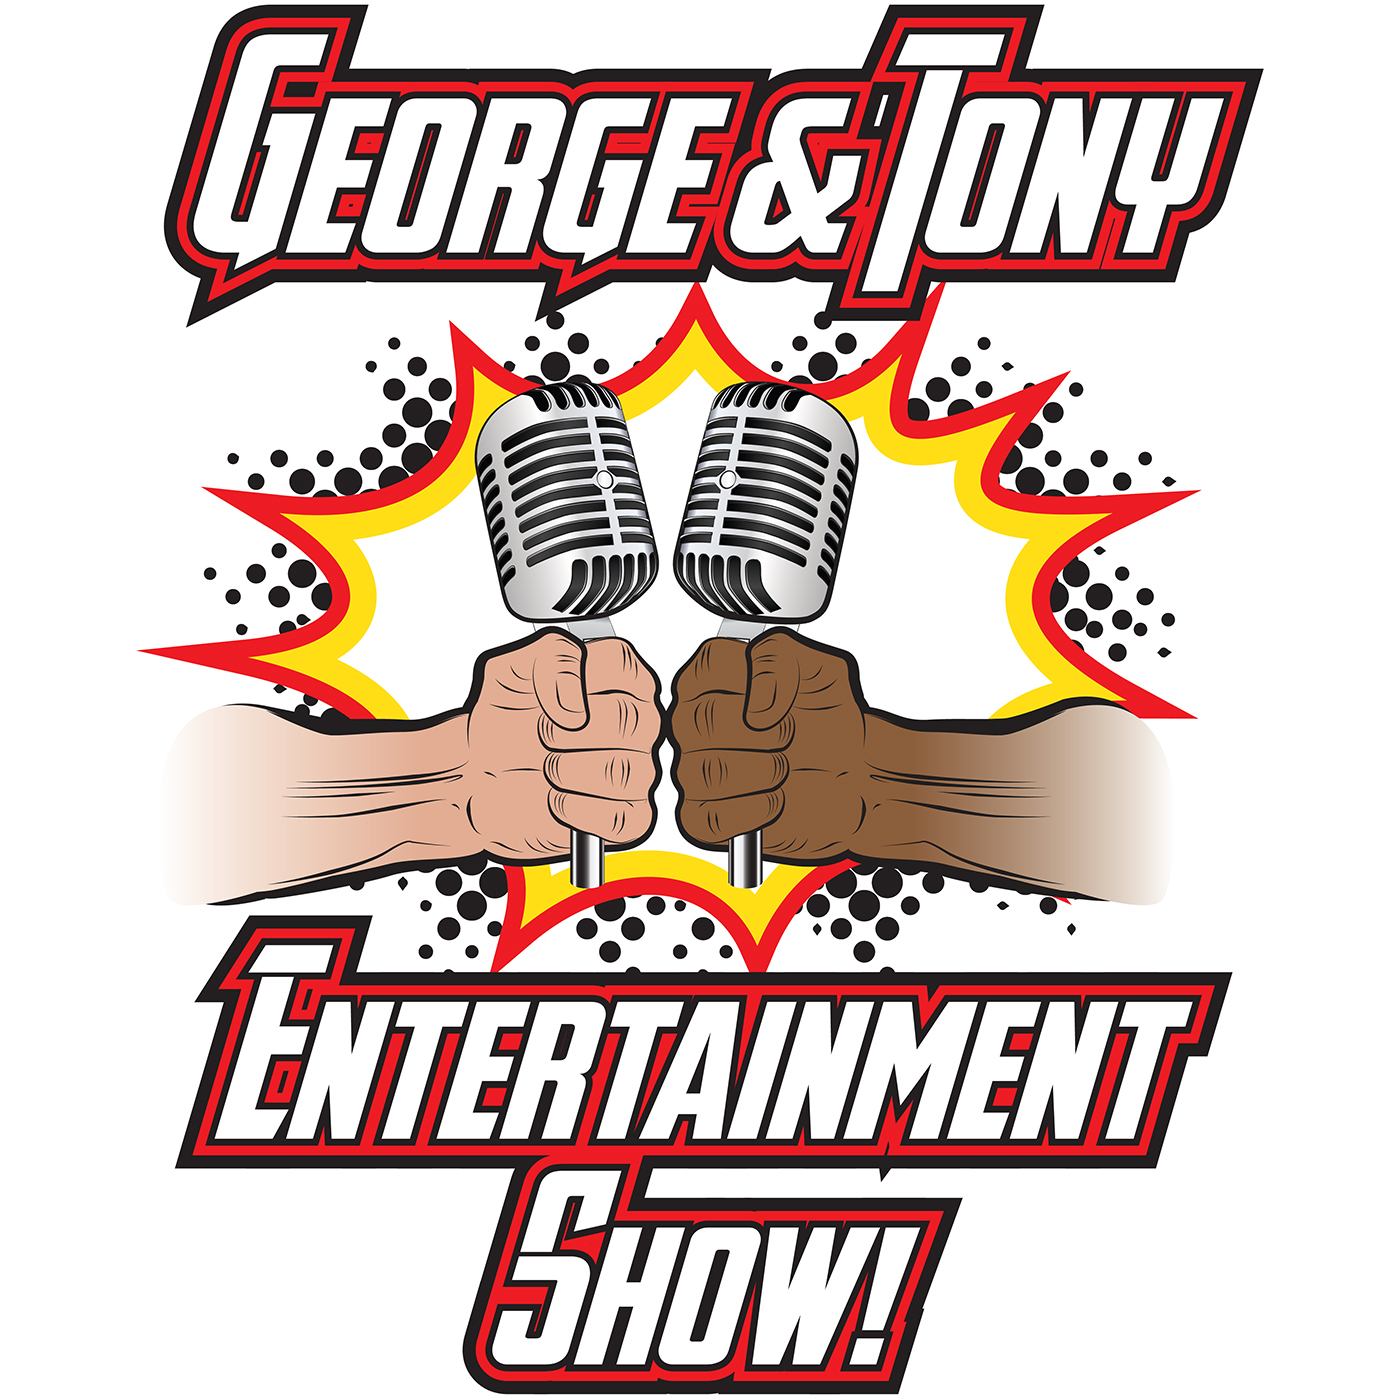 George and Tony Entertainment Show #79